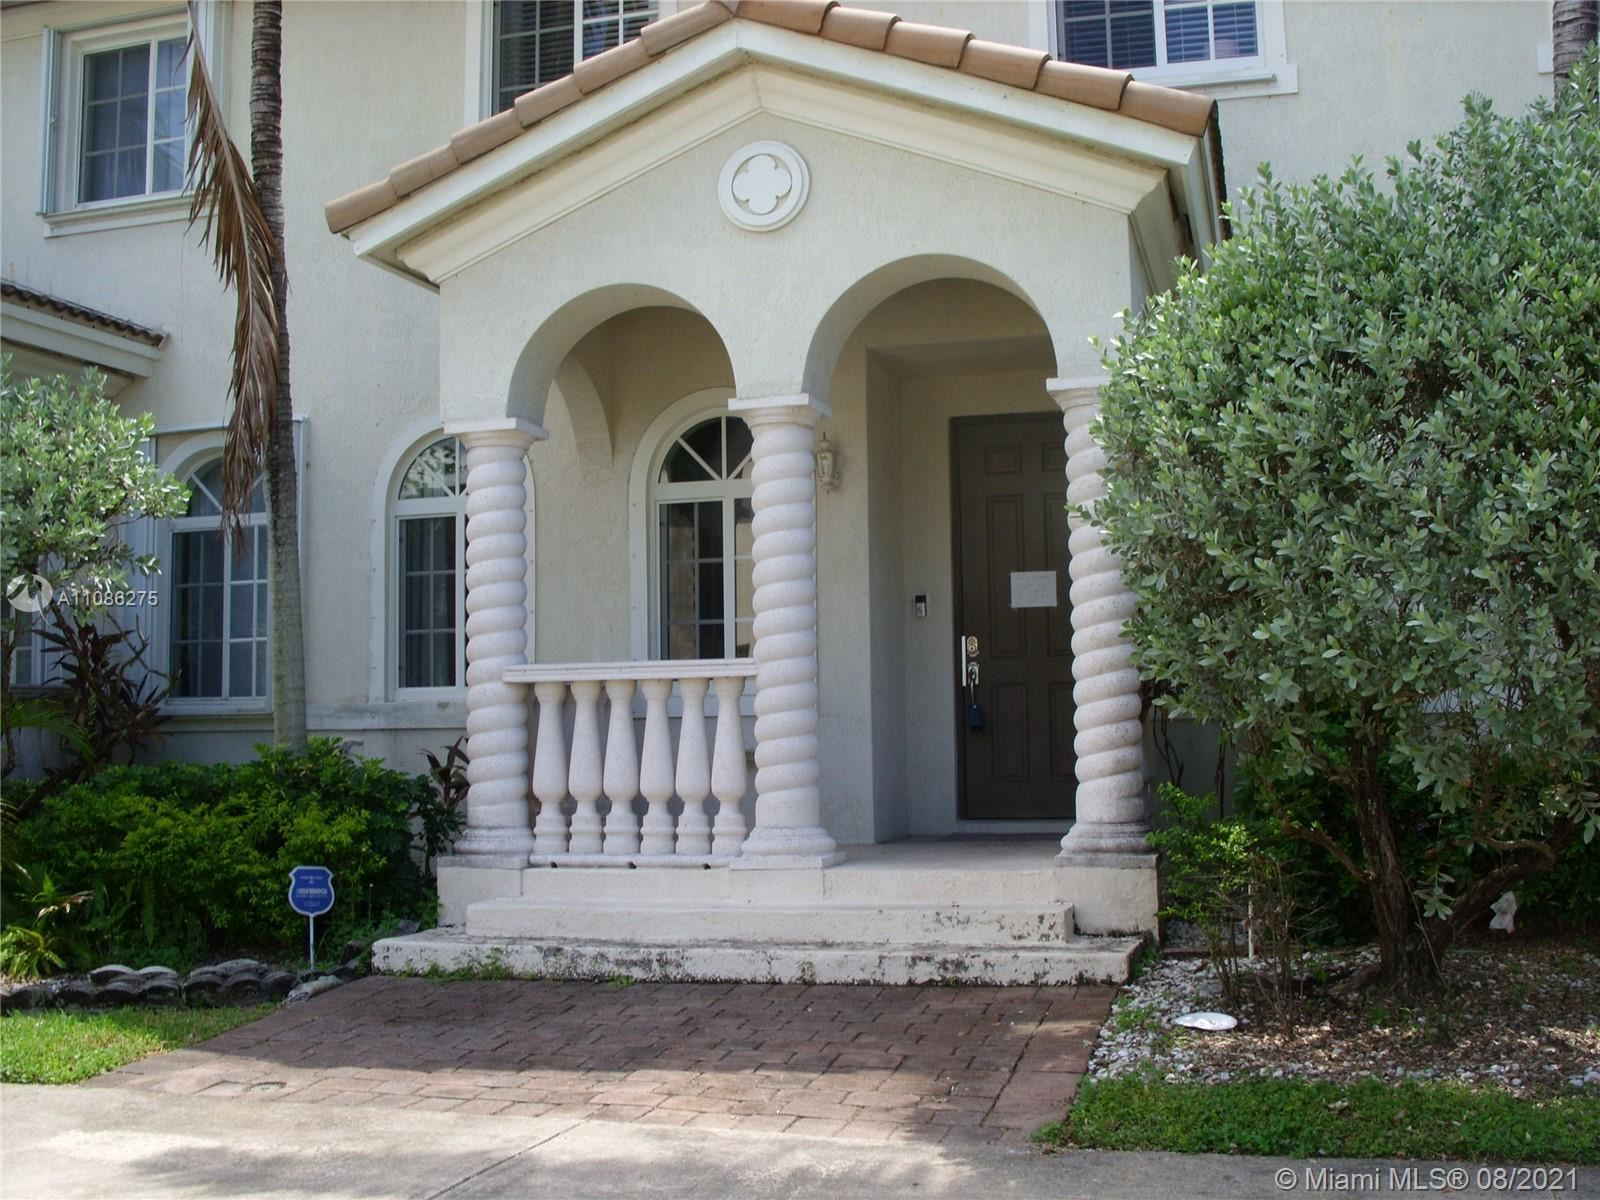 27253 SW 142nd Ave #27253, Homestead, FL 33032 - #: A11086275